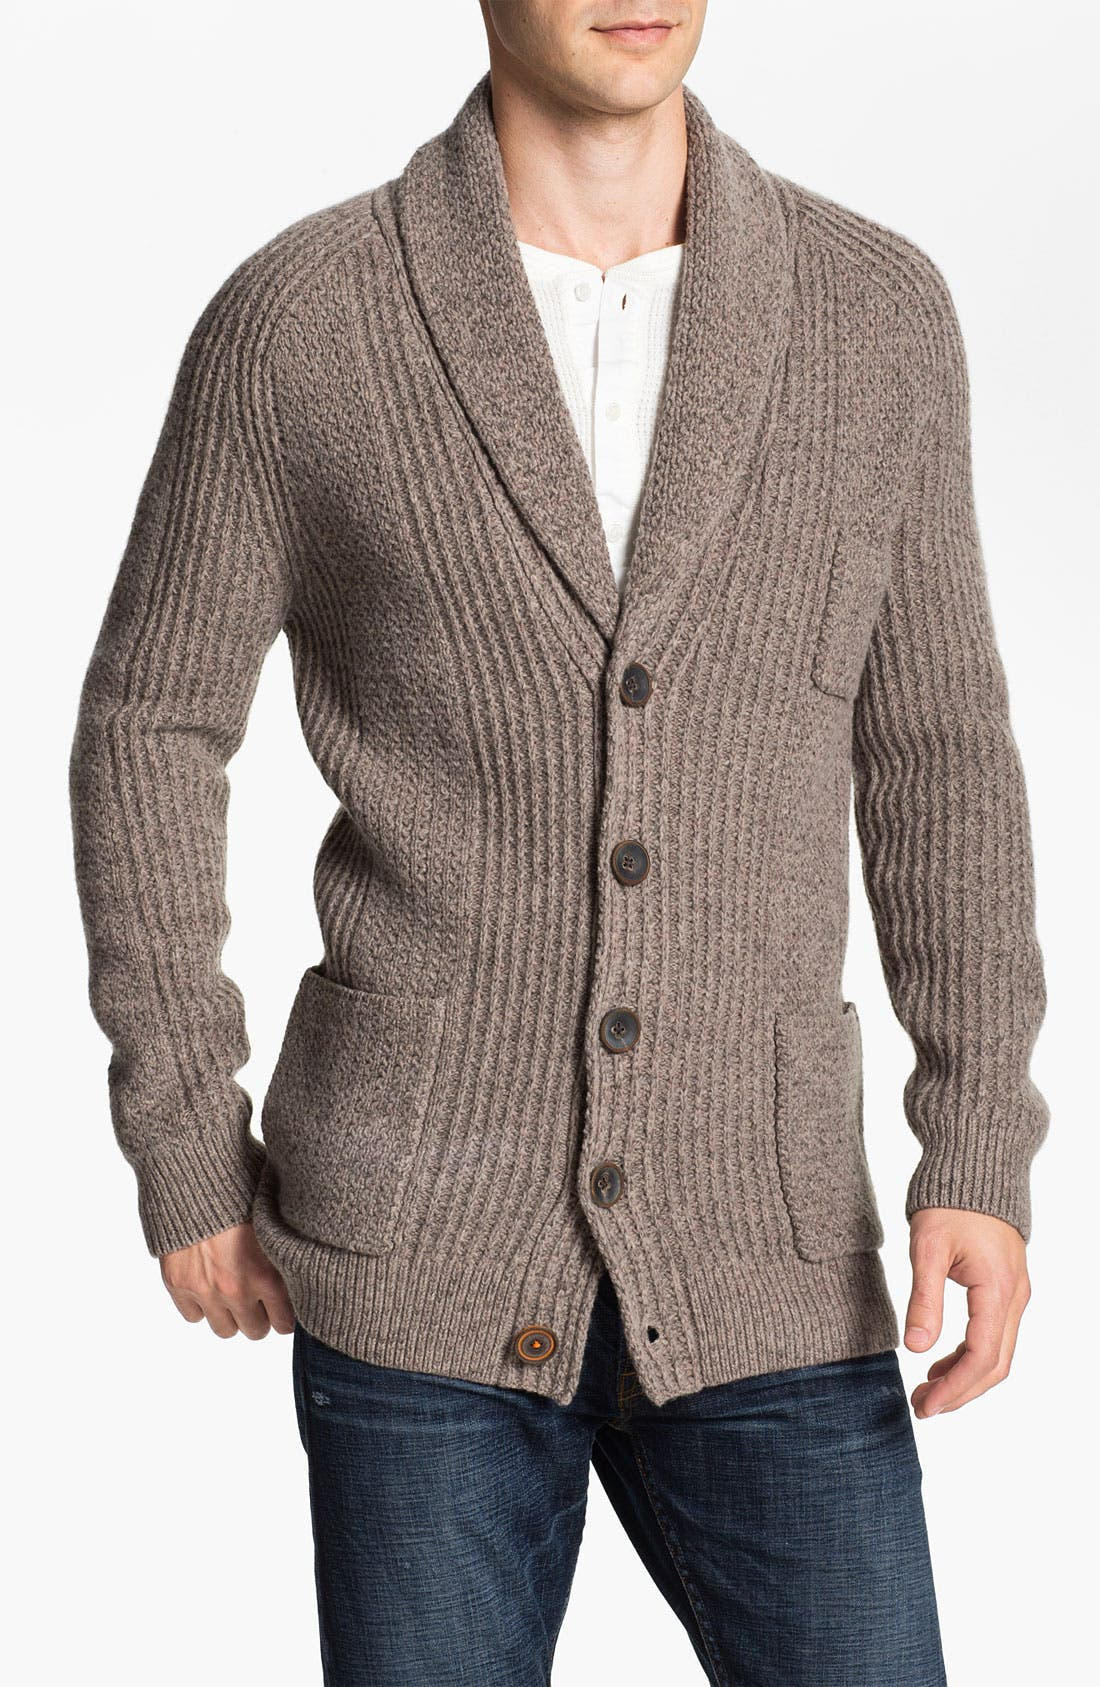 Alternate Image 1 Selected - BOSS Orange Wool Blend Shawl Cardigan